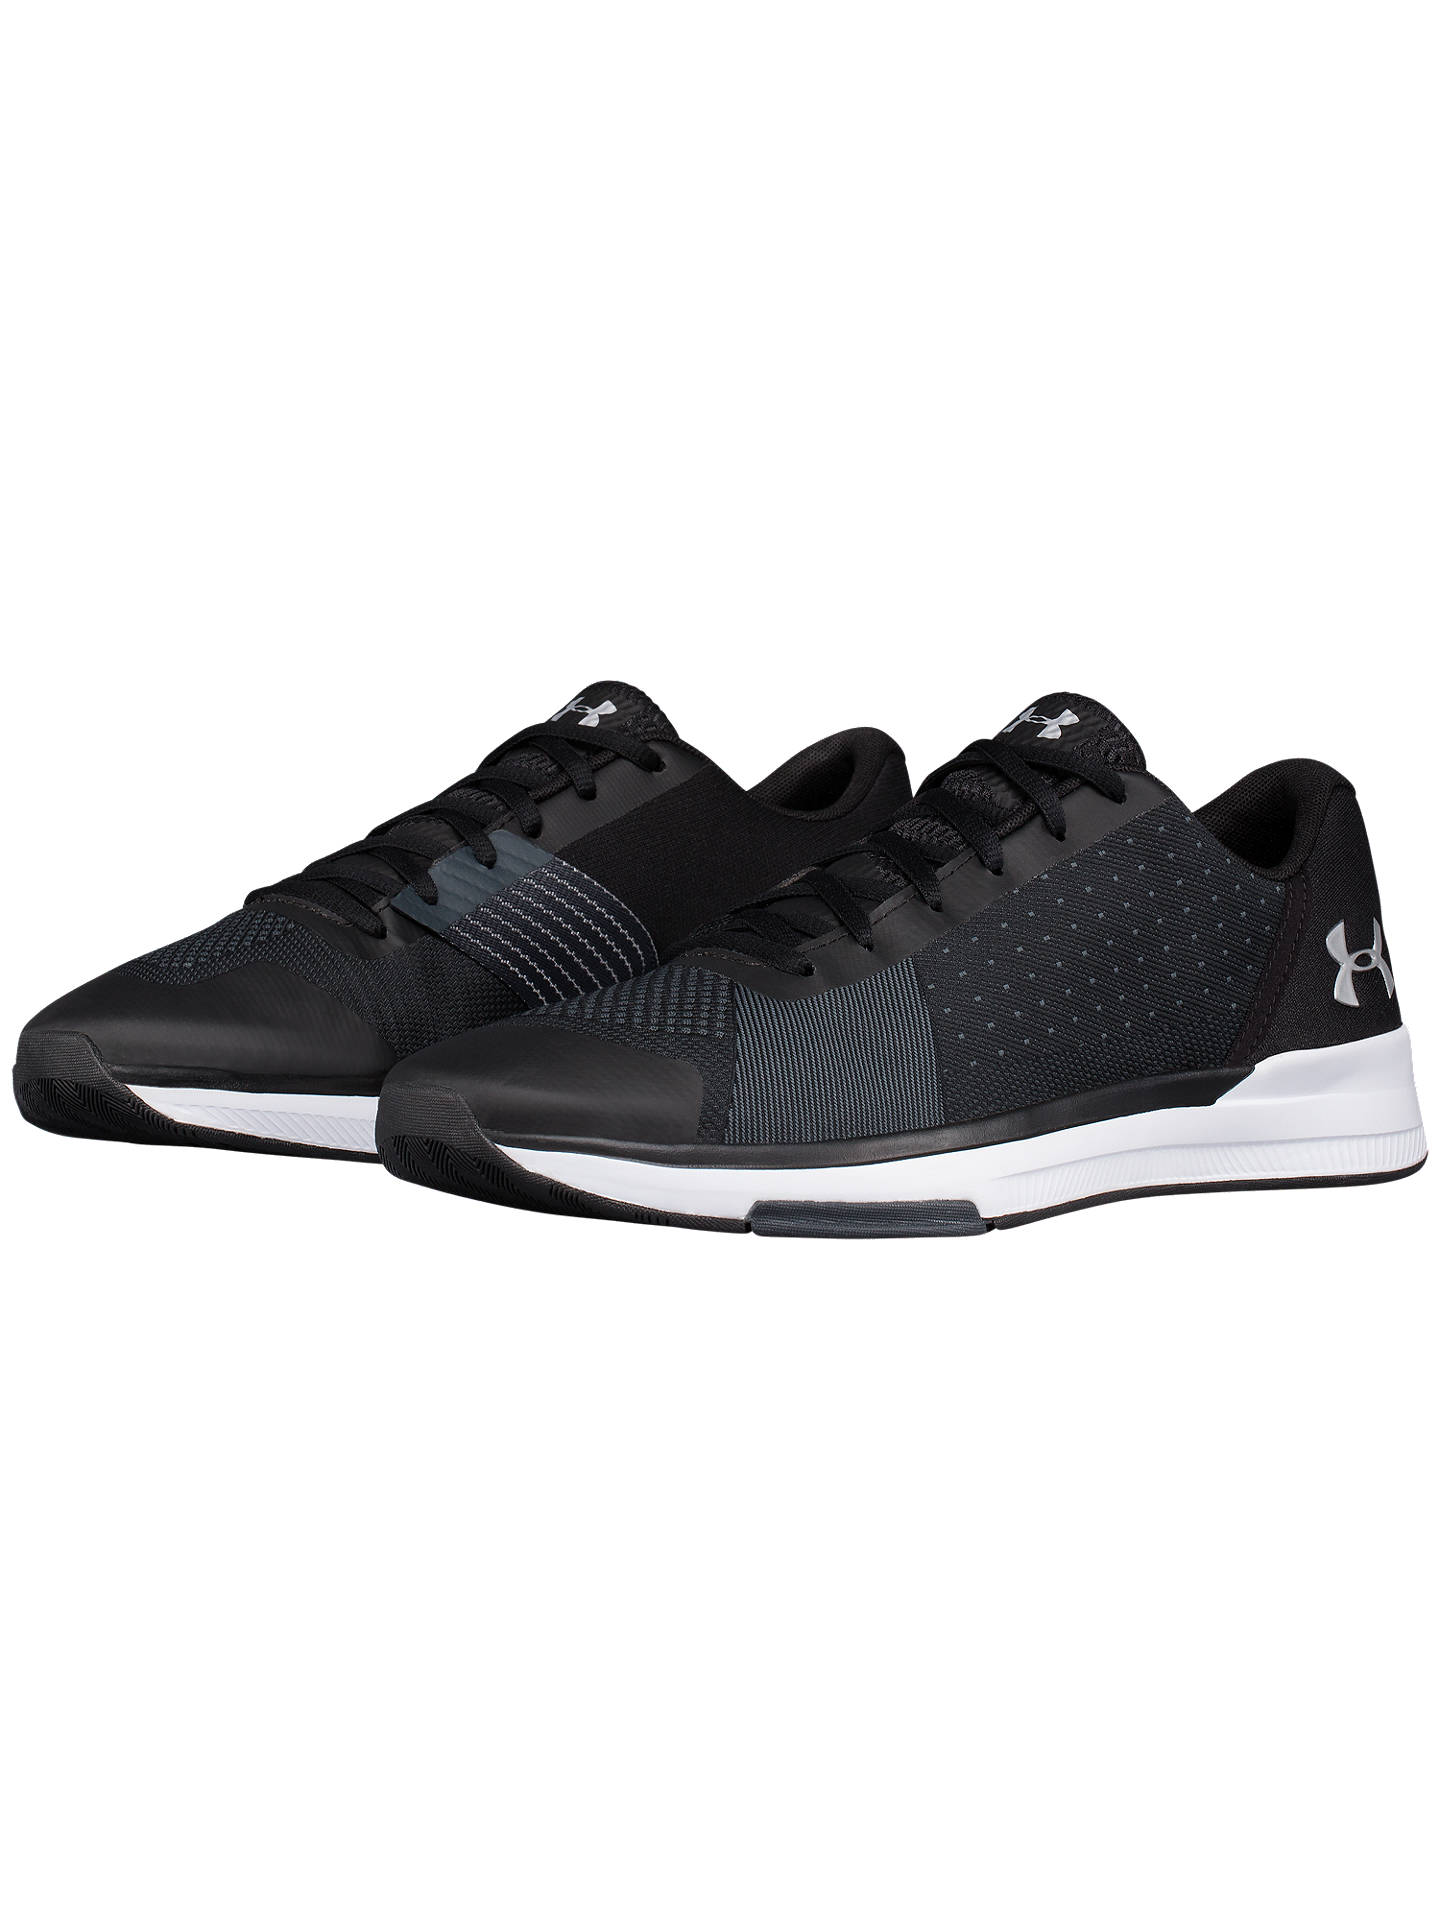 6e6f6ade Under Armour Showstopper Men's Training Shoes, Black at John Lewis ...